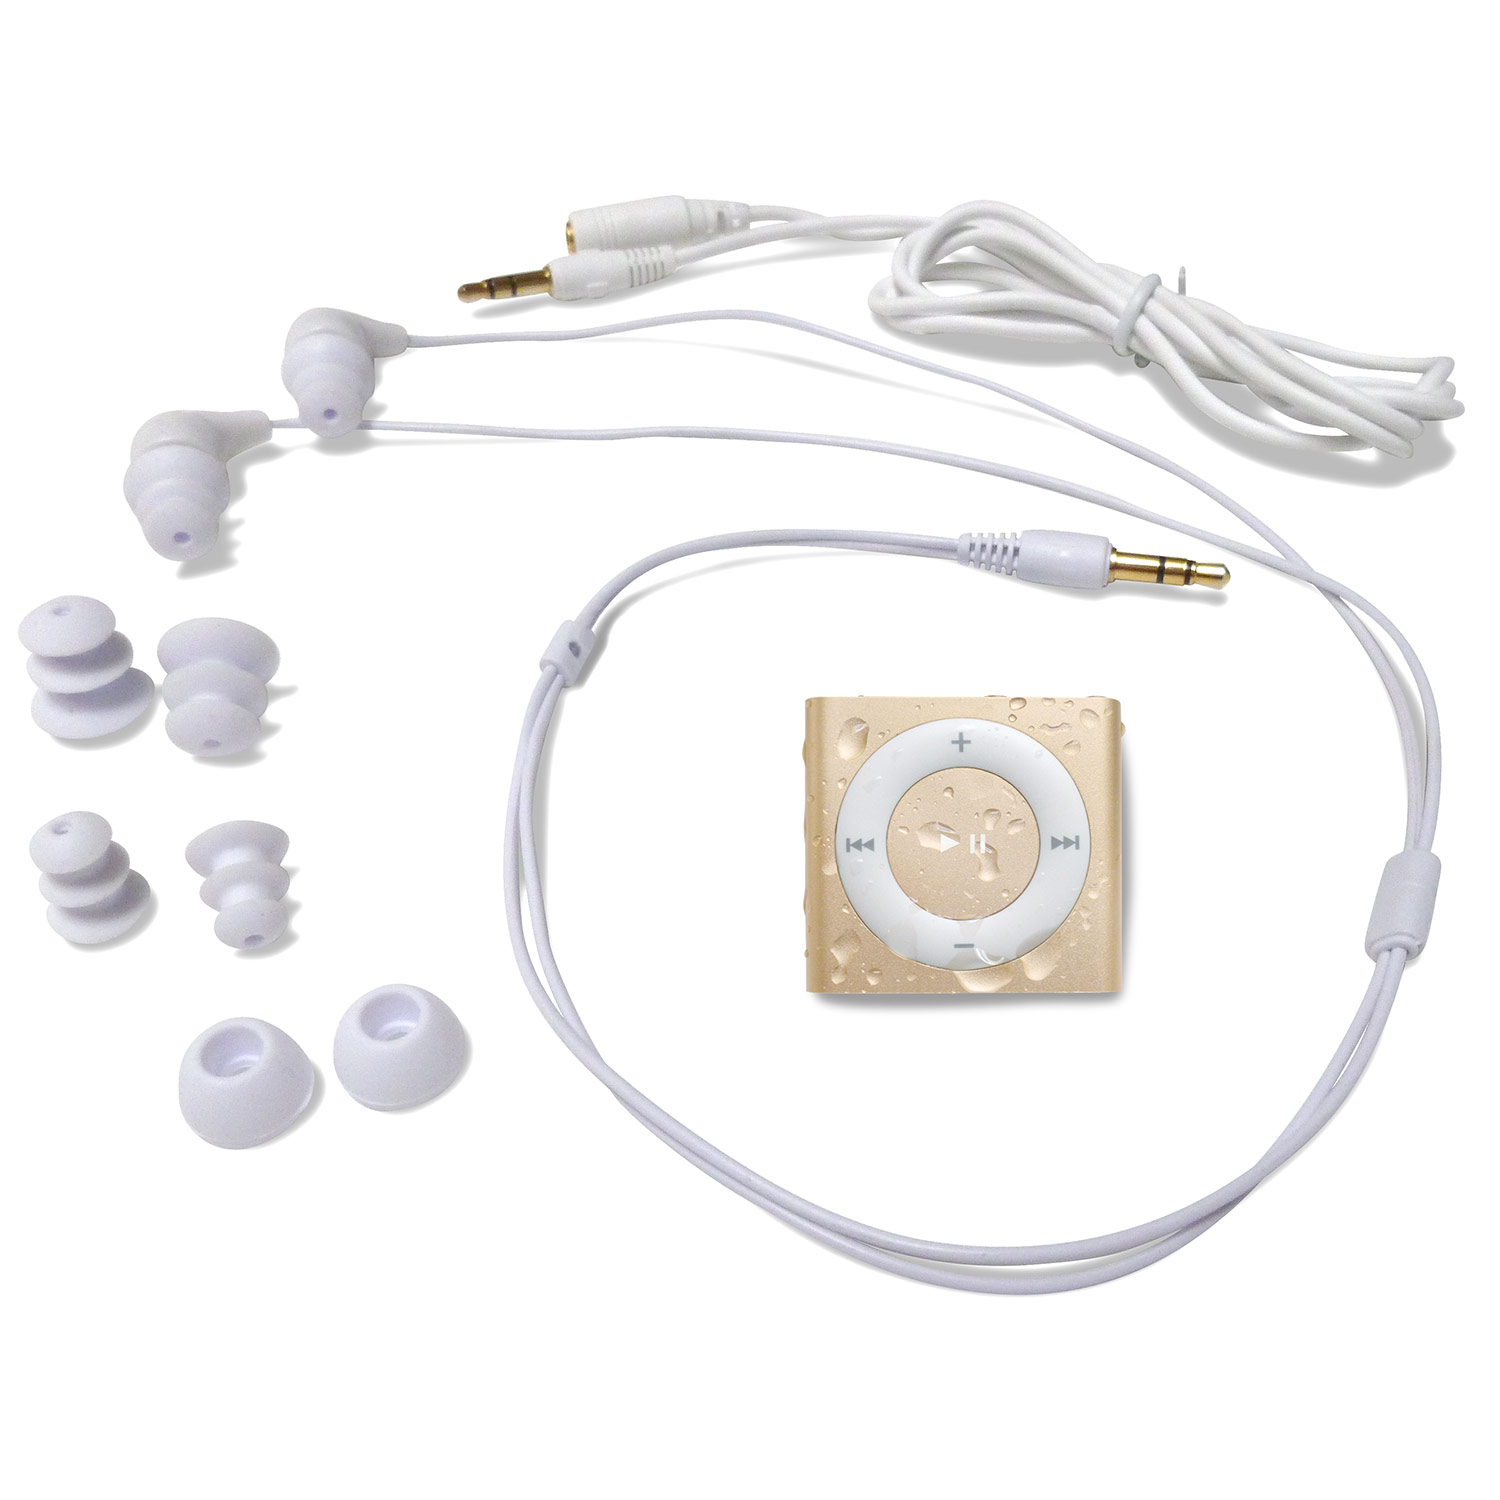 Underwater Audio Waterproof iPod Shuffle & Swimbuds Headphones Bundle